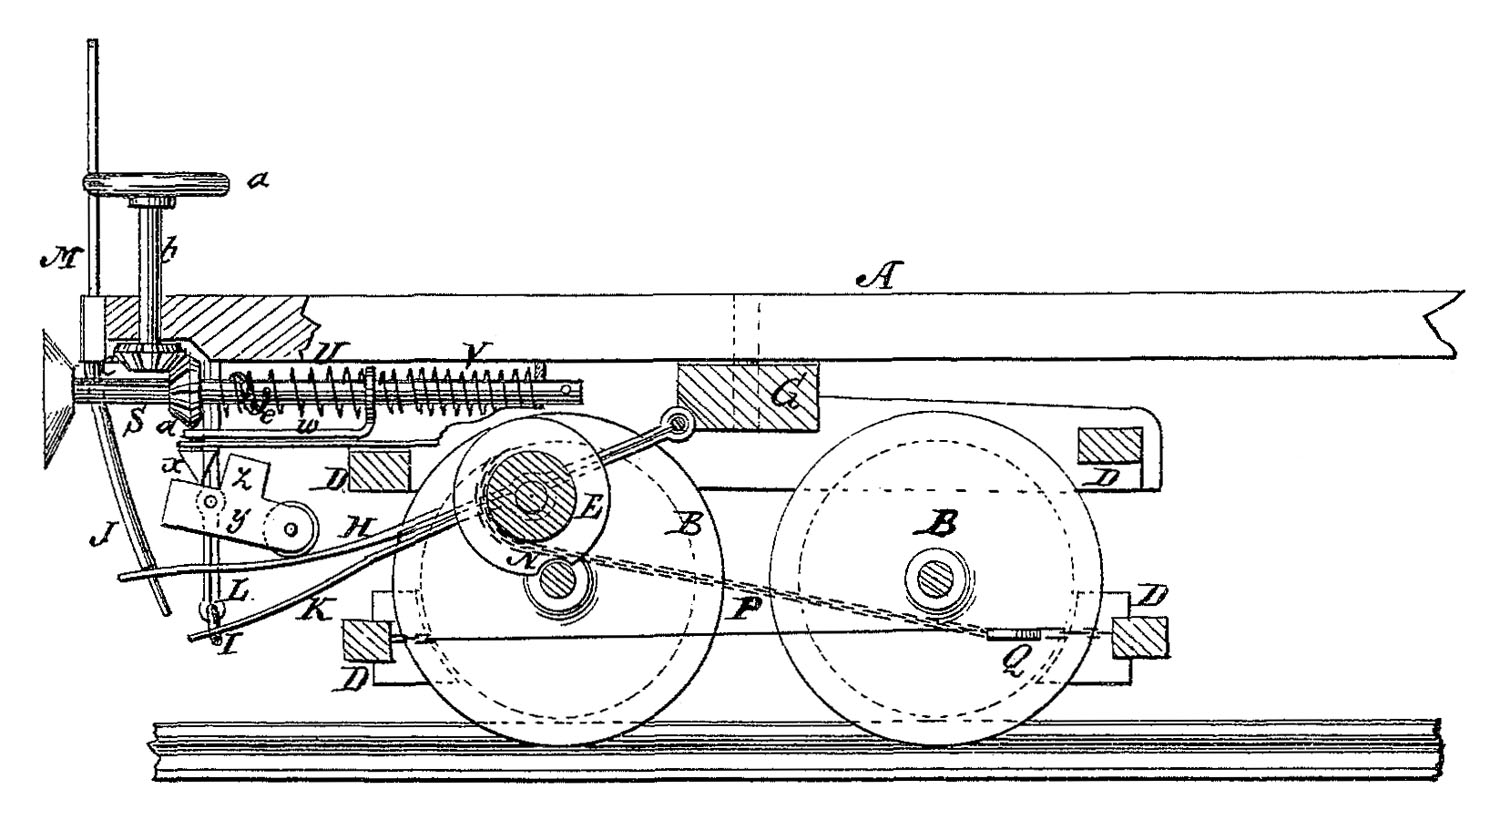 Bottom Of Car Diagram on railroad car suspension components